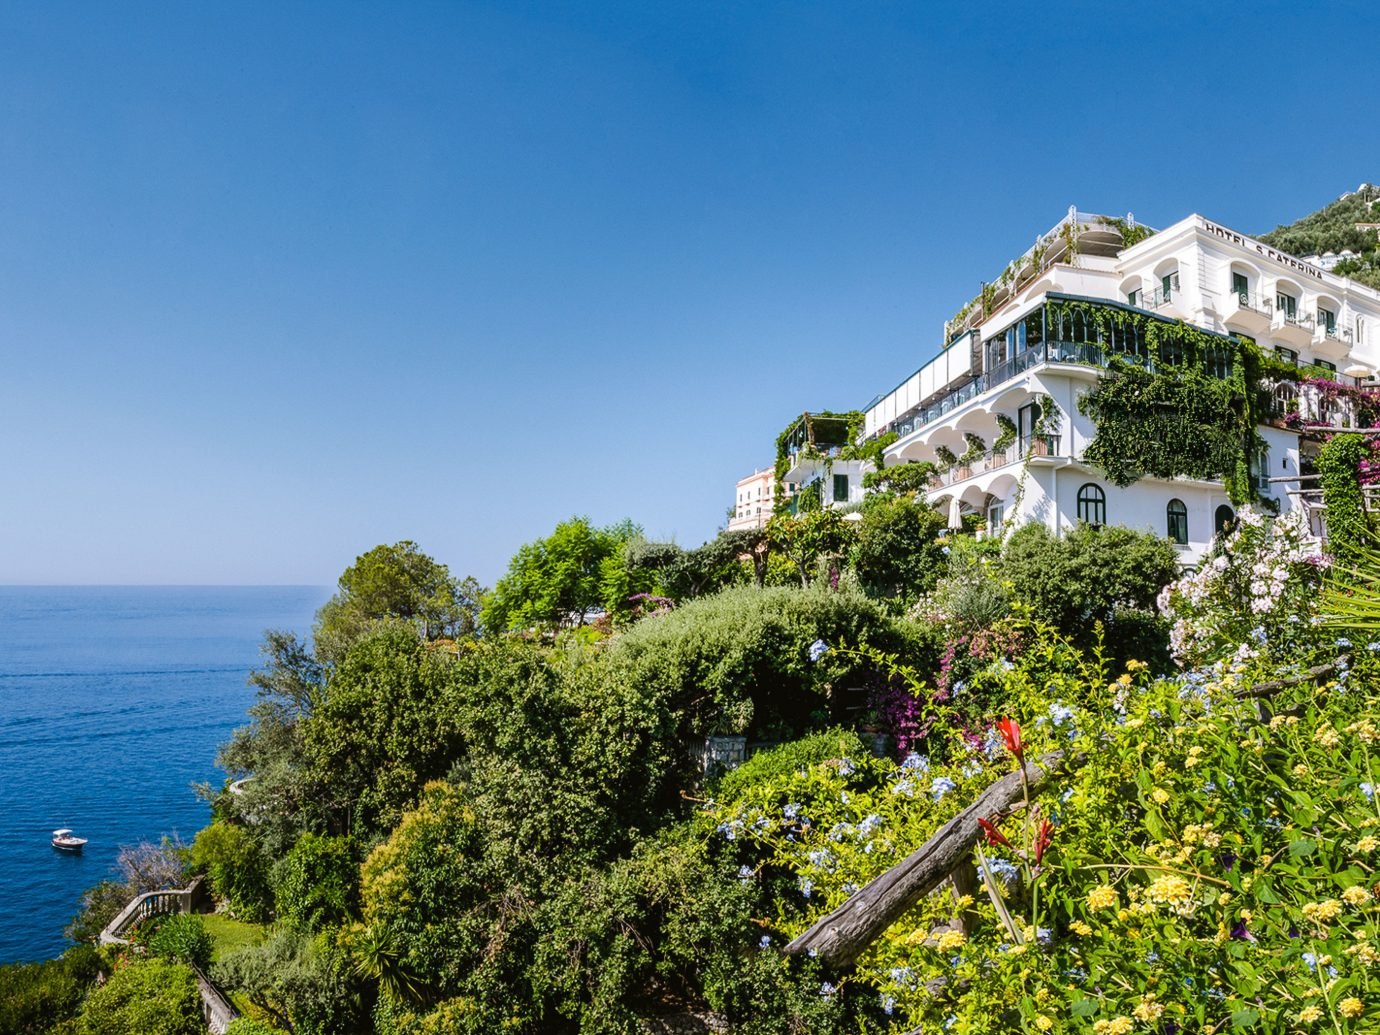 Hotels Romance tree outdoor sky Sea Coast building promontory plant real estate terrain mount scenery house water tourism estate mountain home Resort cottage City bay landscape cape vacation Ocean Village cliff